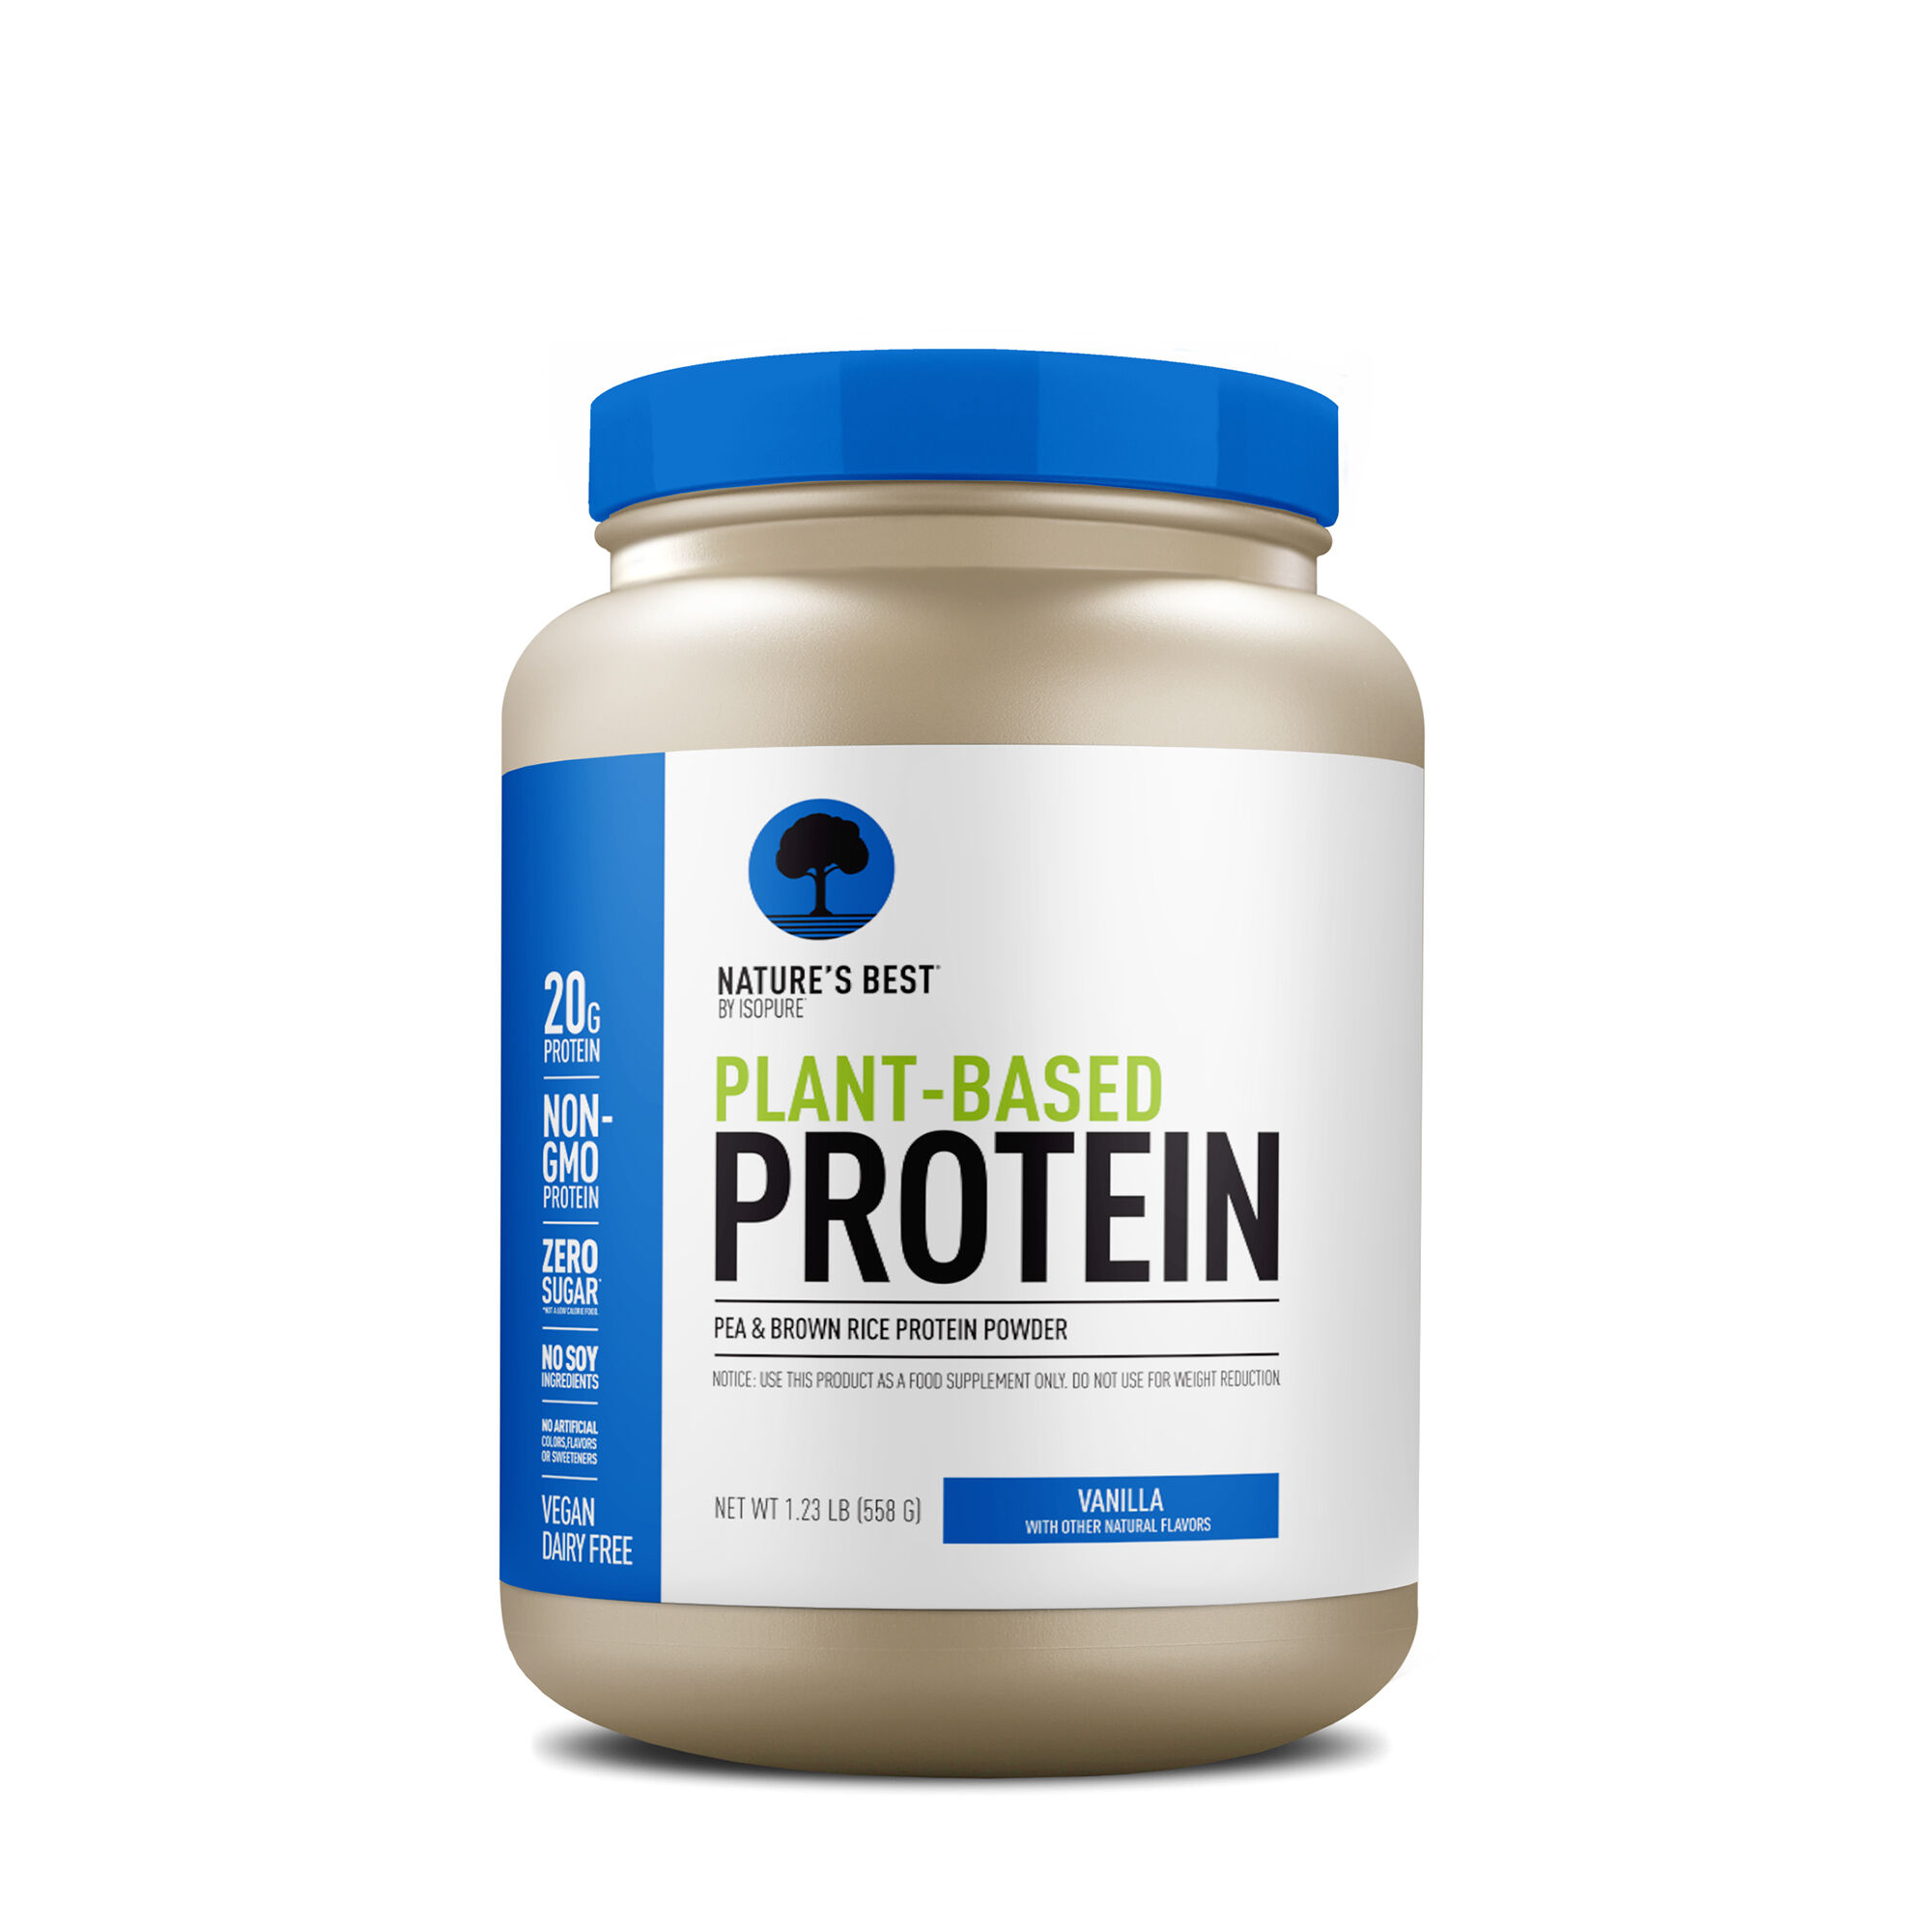 soy free protein powder for weight loss